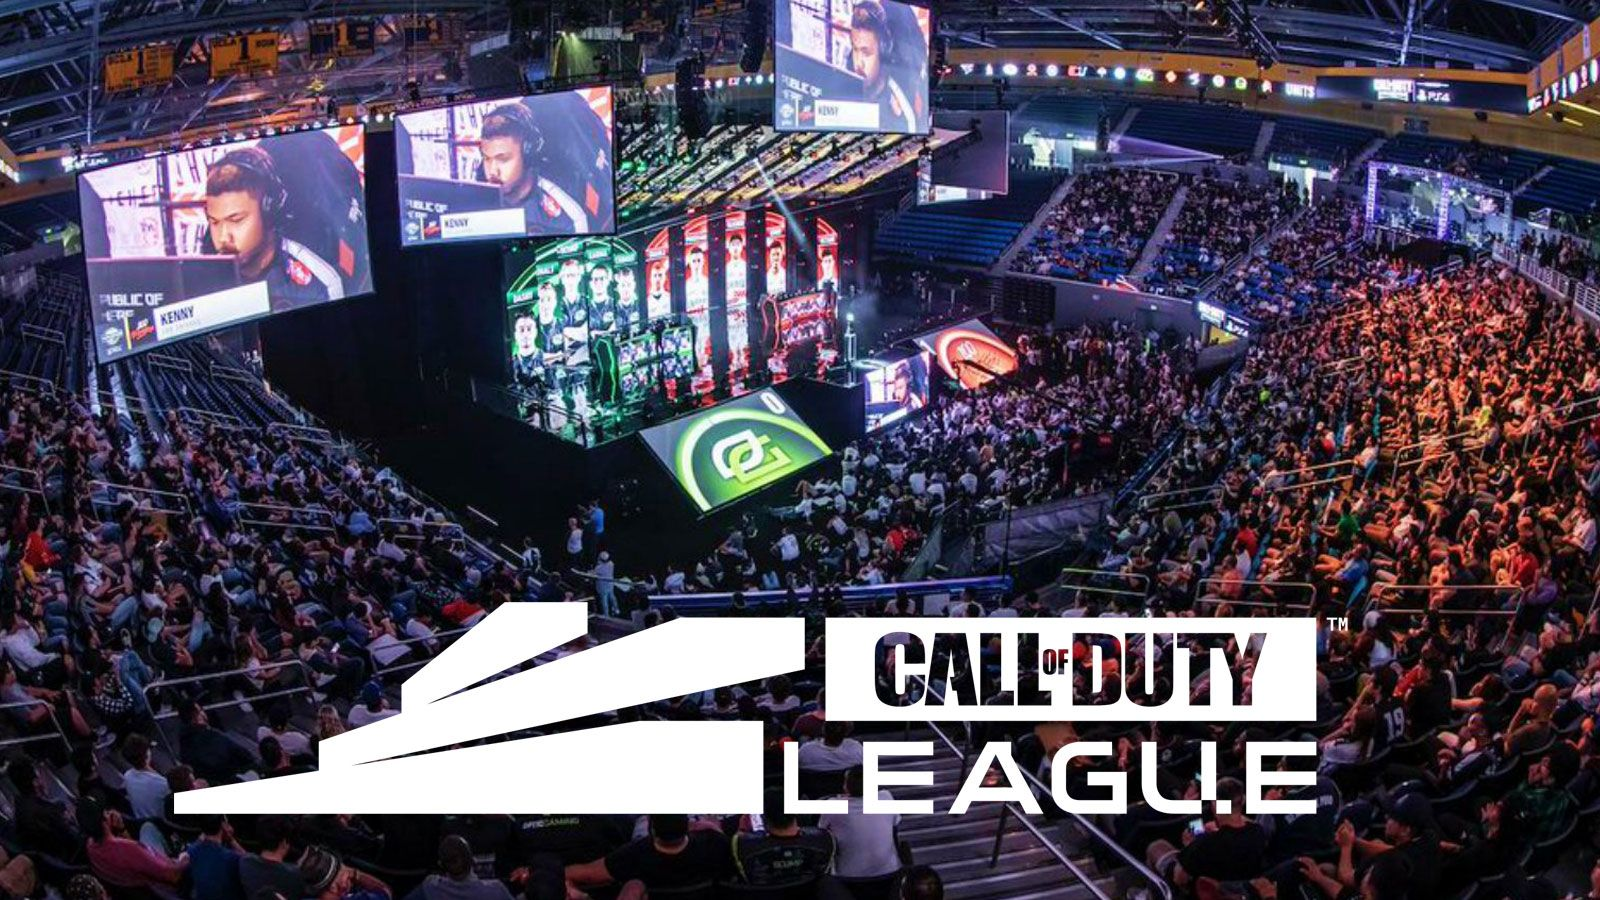 Call of Duty League Arena